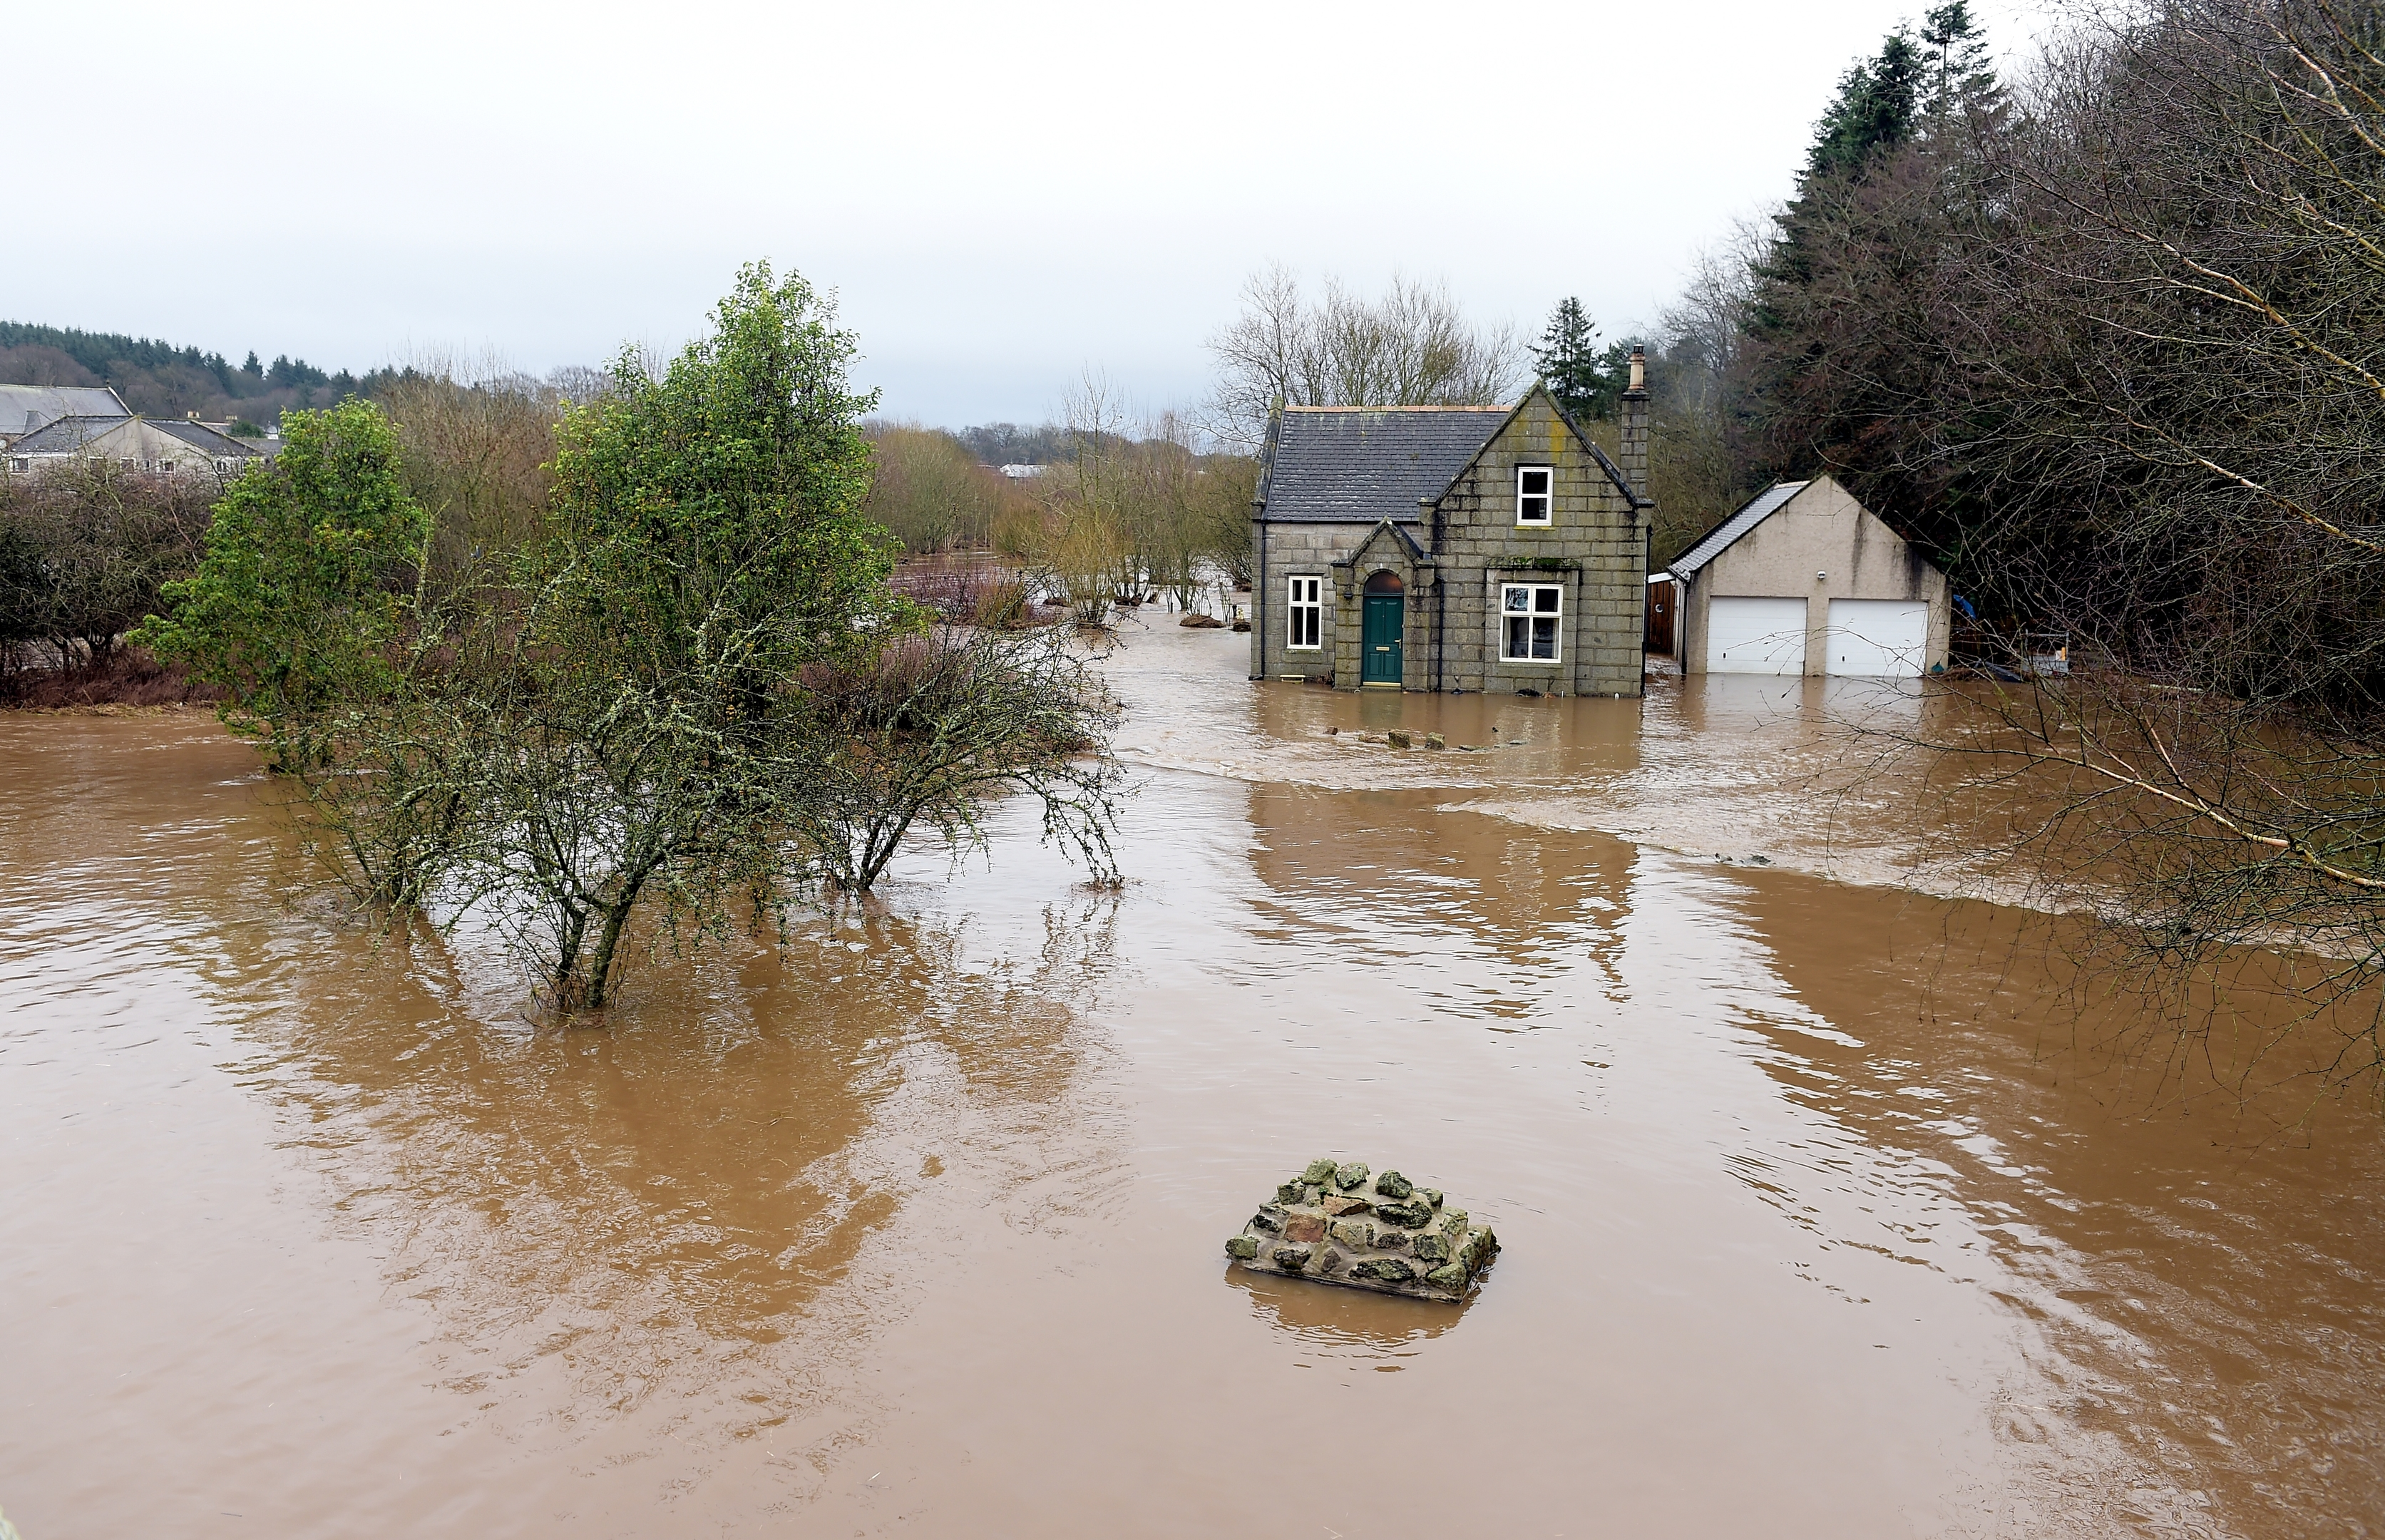 The River Ythan has burst it's banks at Ellon. The home of George Thomson on the banks of the Ythan near the old bridge which was flooded last night.